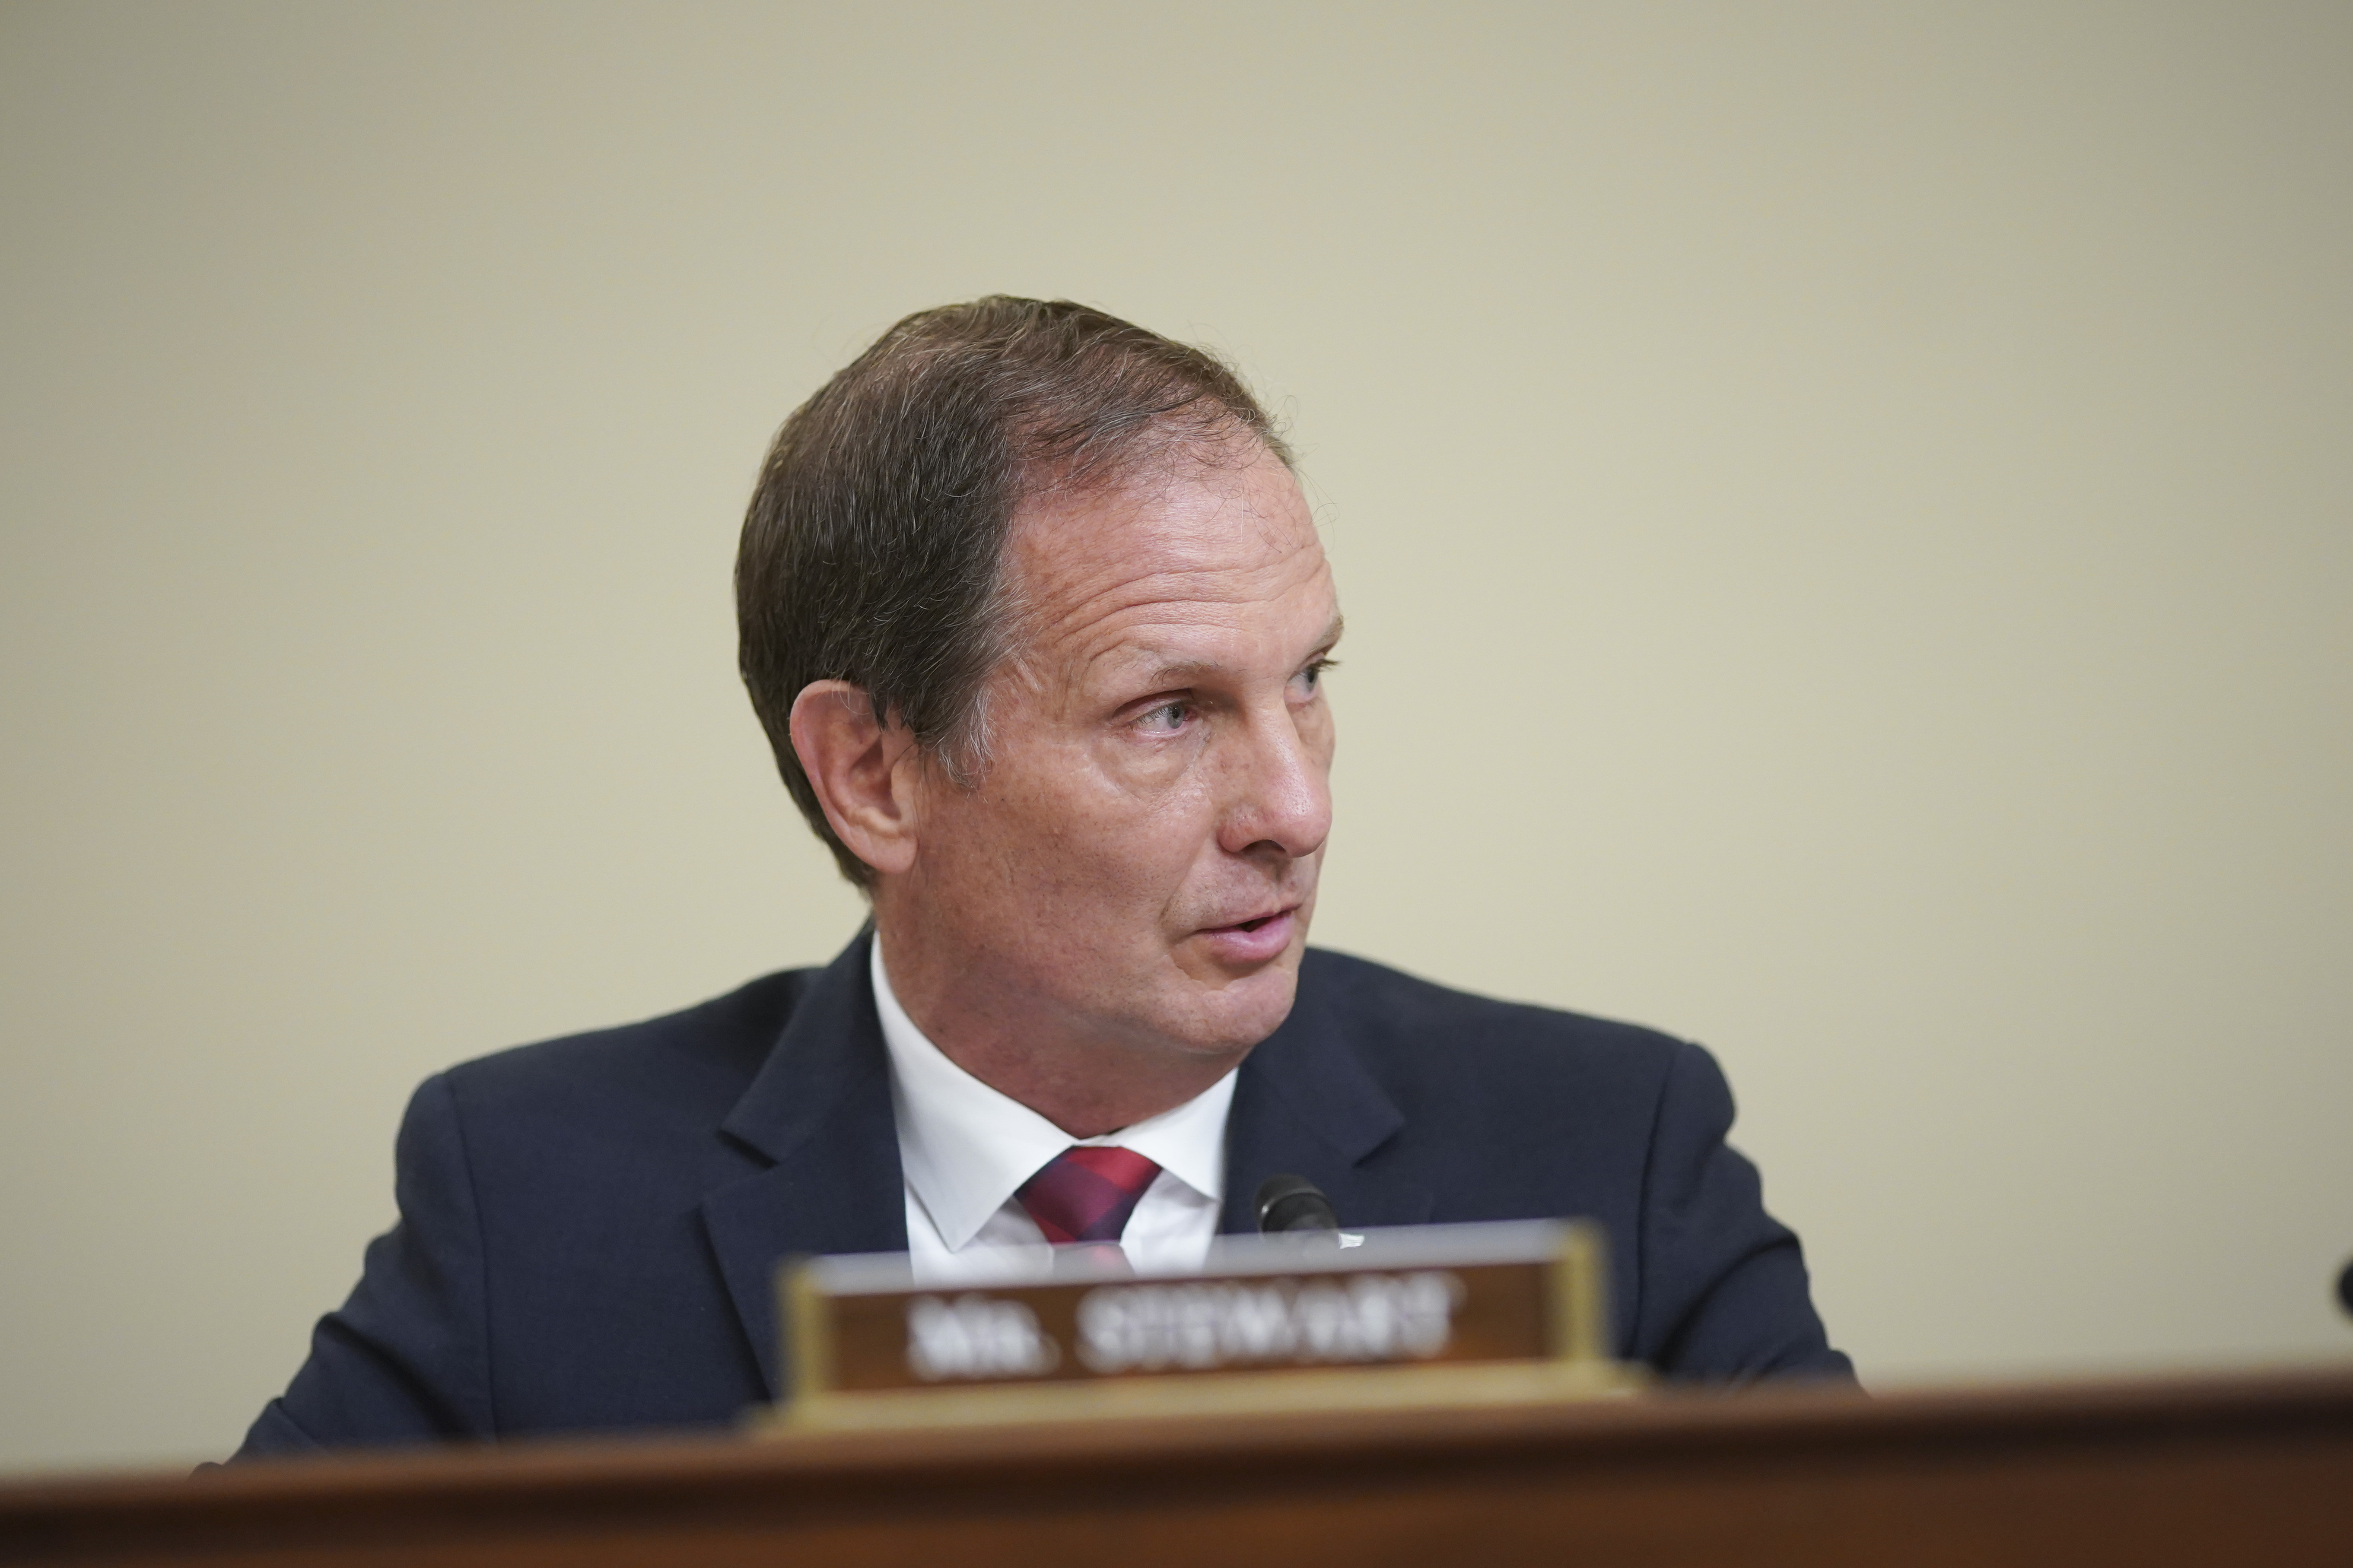 Rep. Chris Stewart, R-Utah, speaks during a House Intelligence Committee hearing on Capitol Hill in Washington.